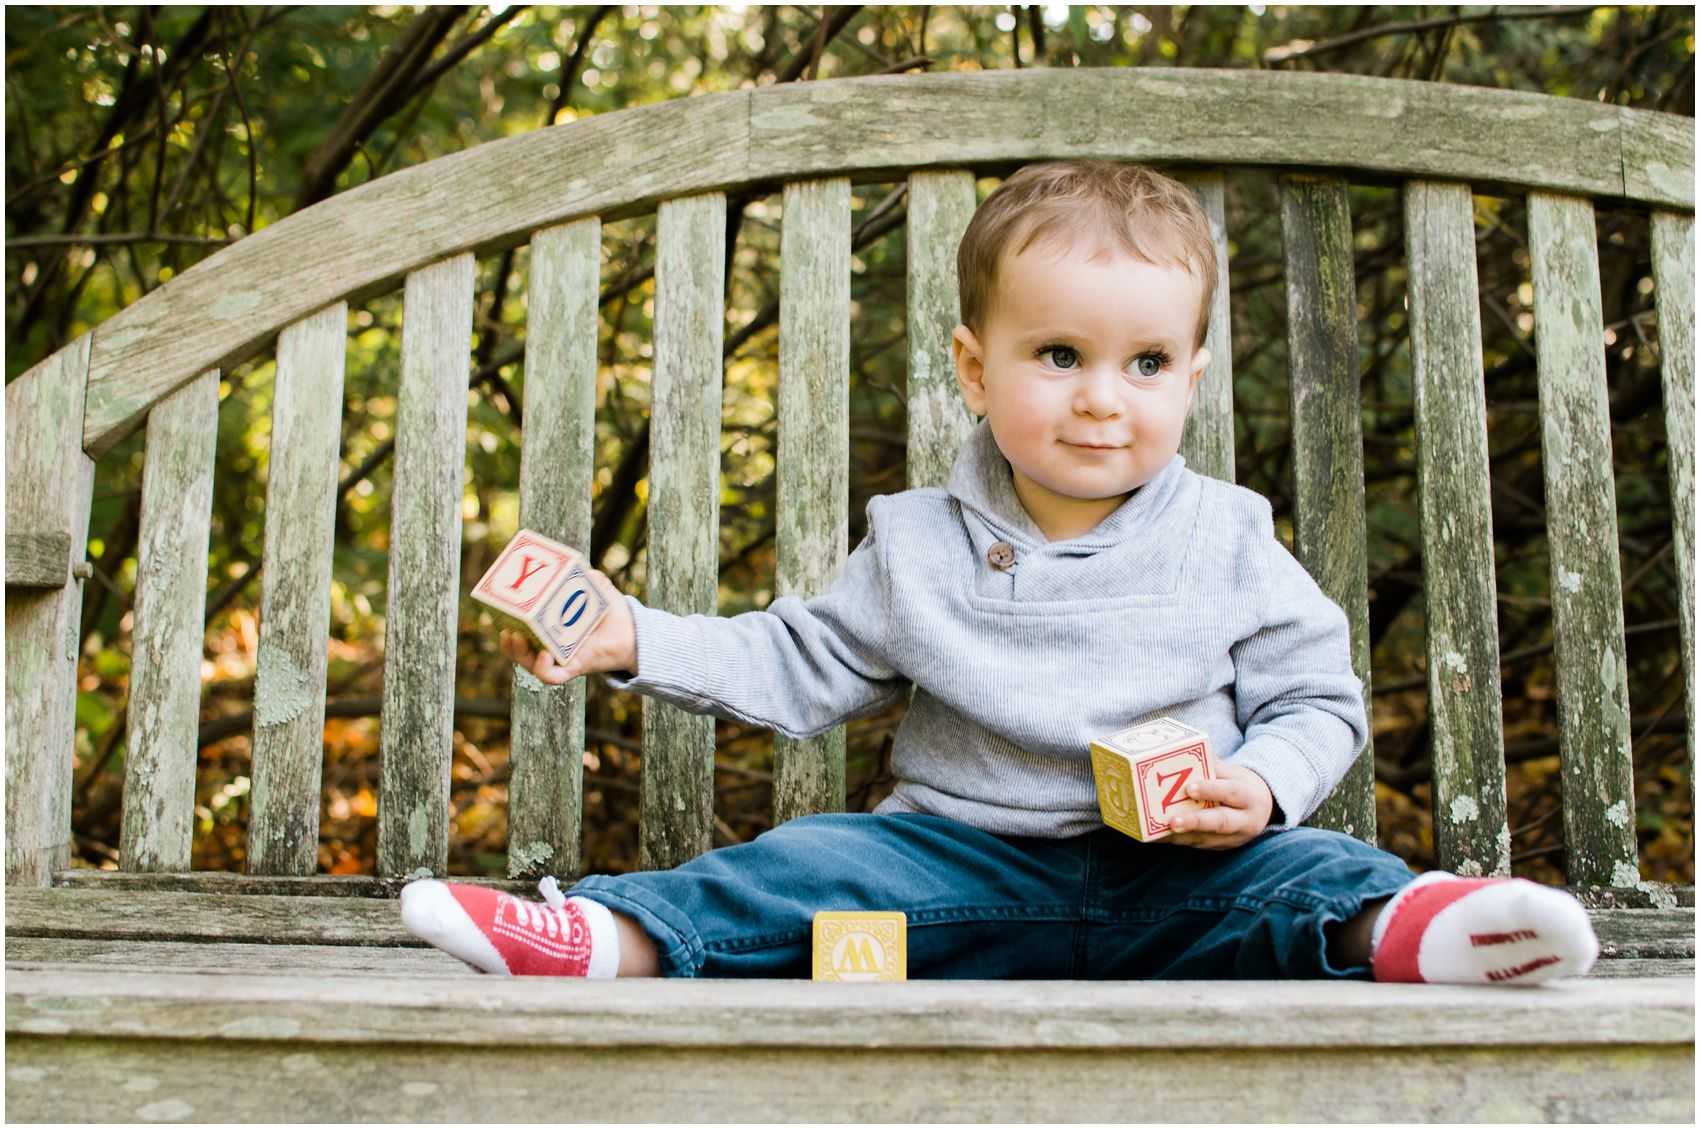 little baby wearing blue and grey clothing sitting on bench playing with abc blocks